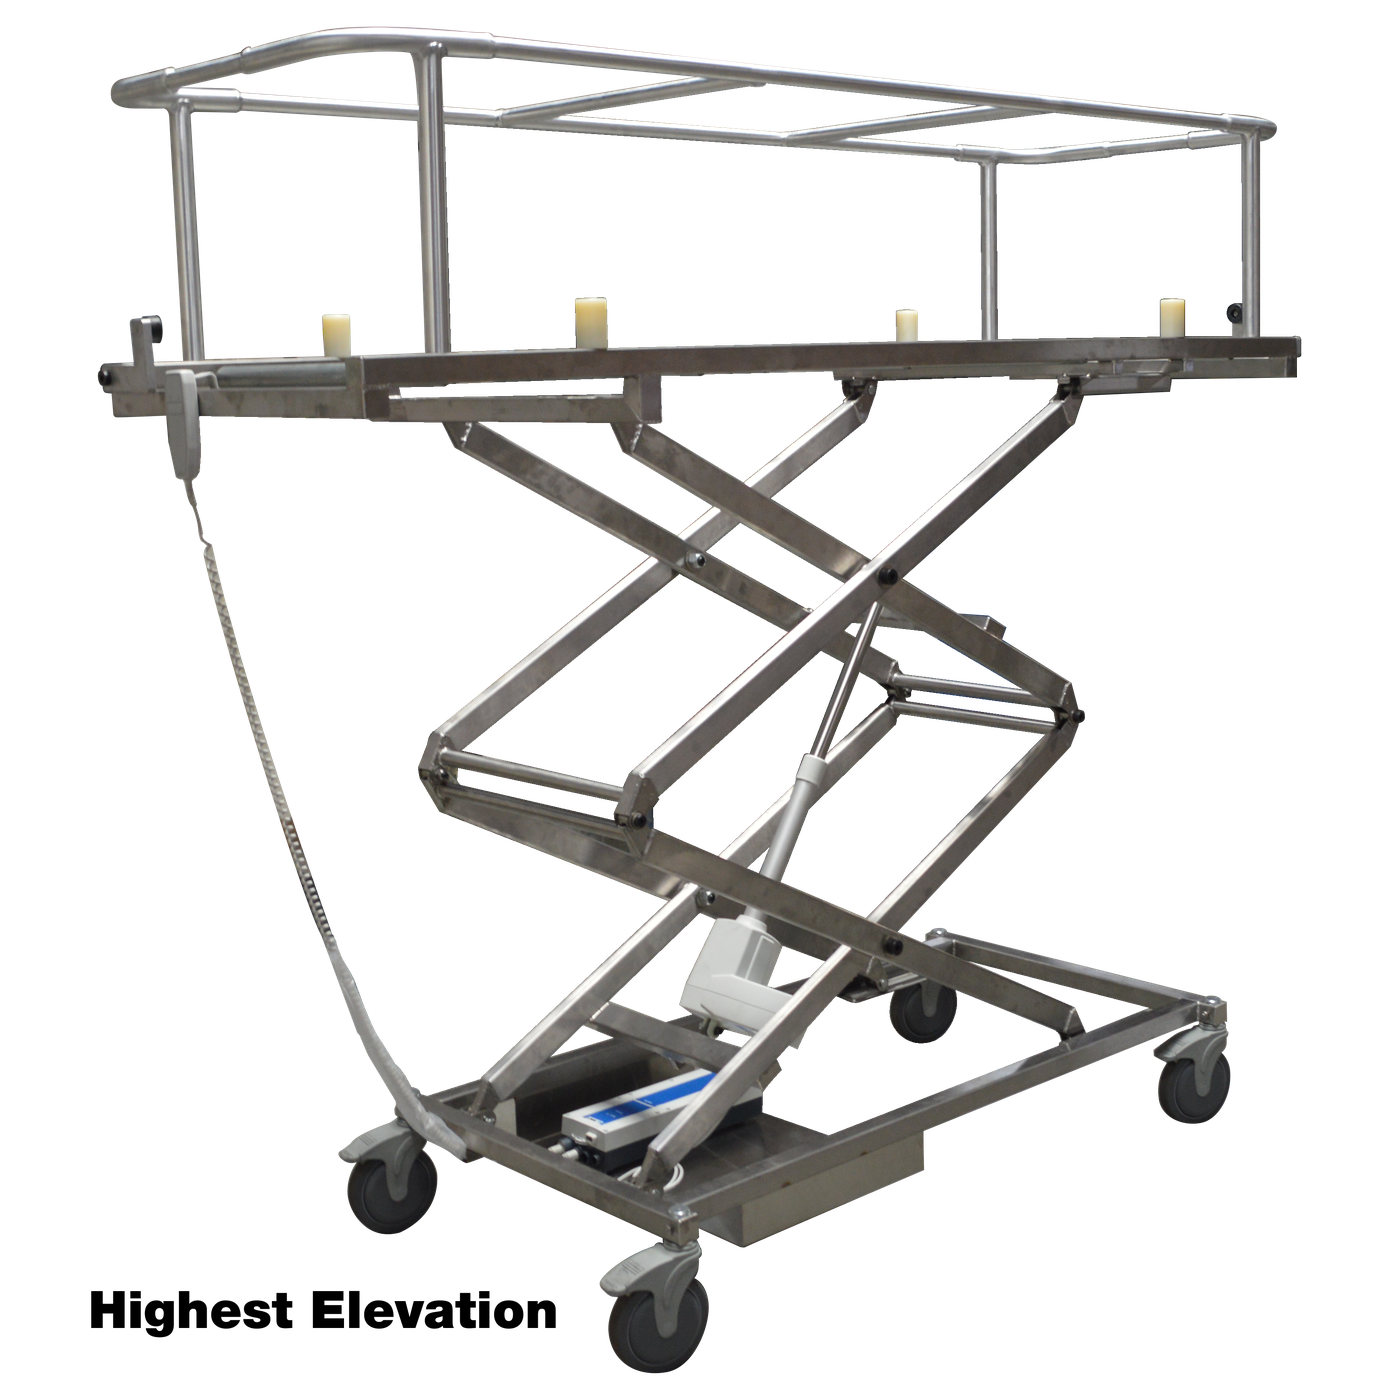 Covered Cadaver Scissor Carrier-Body Transporter-Mortech Manufacturing Company Inc. Quality Stainless Steel Autopsy, Morgue, Funeral Home, Necropsy, Veterinary / Anatomy, Dissection Equipment and Accessories